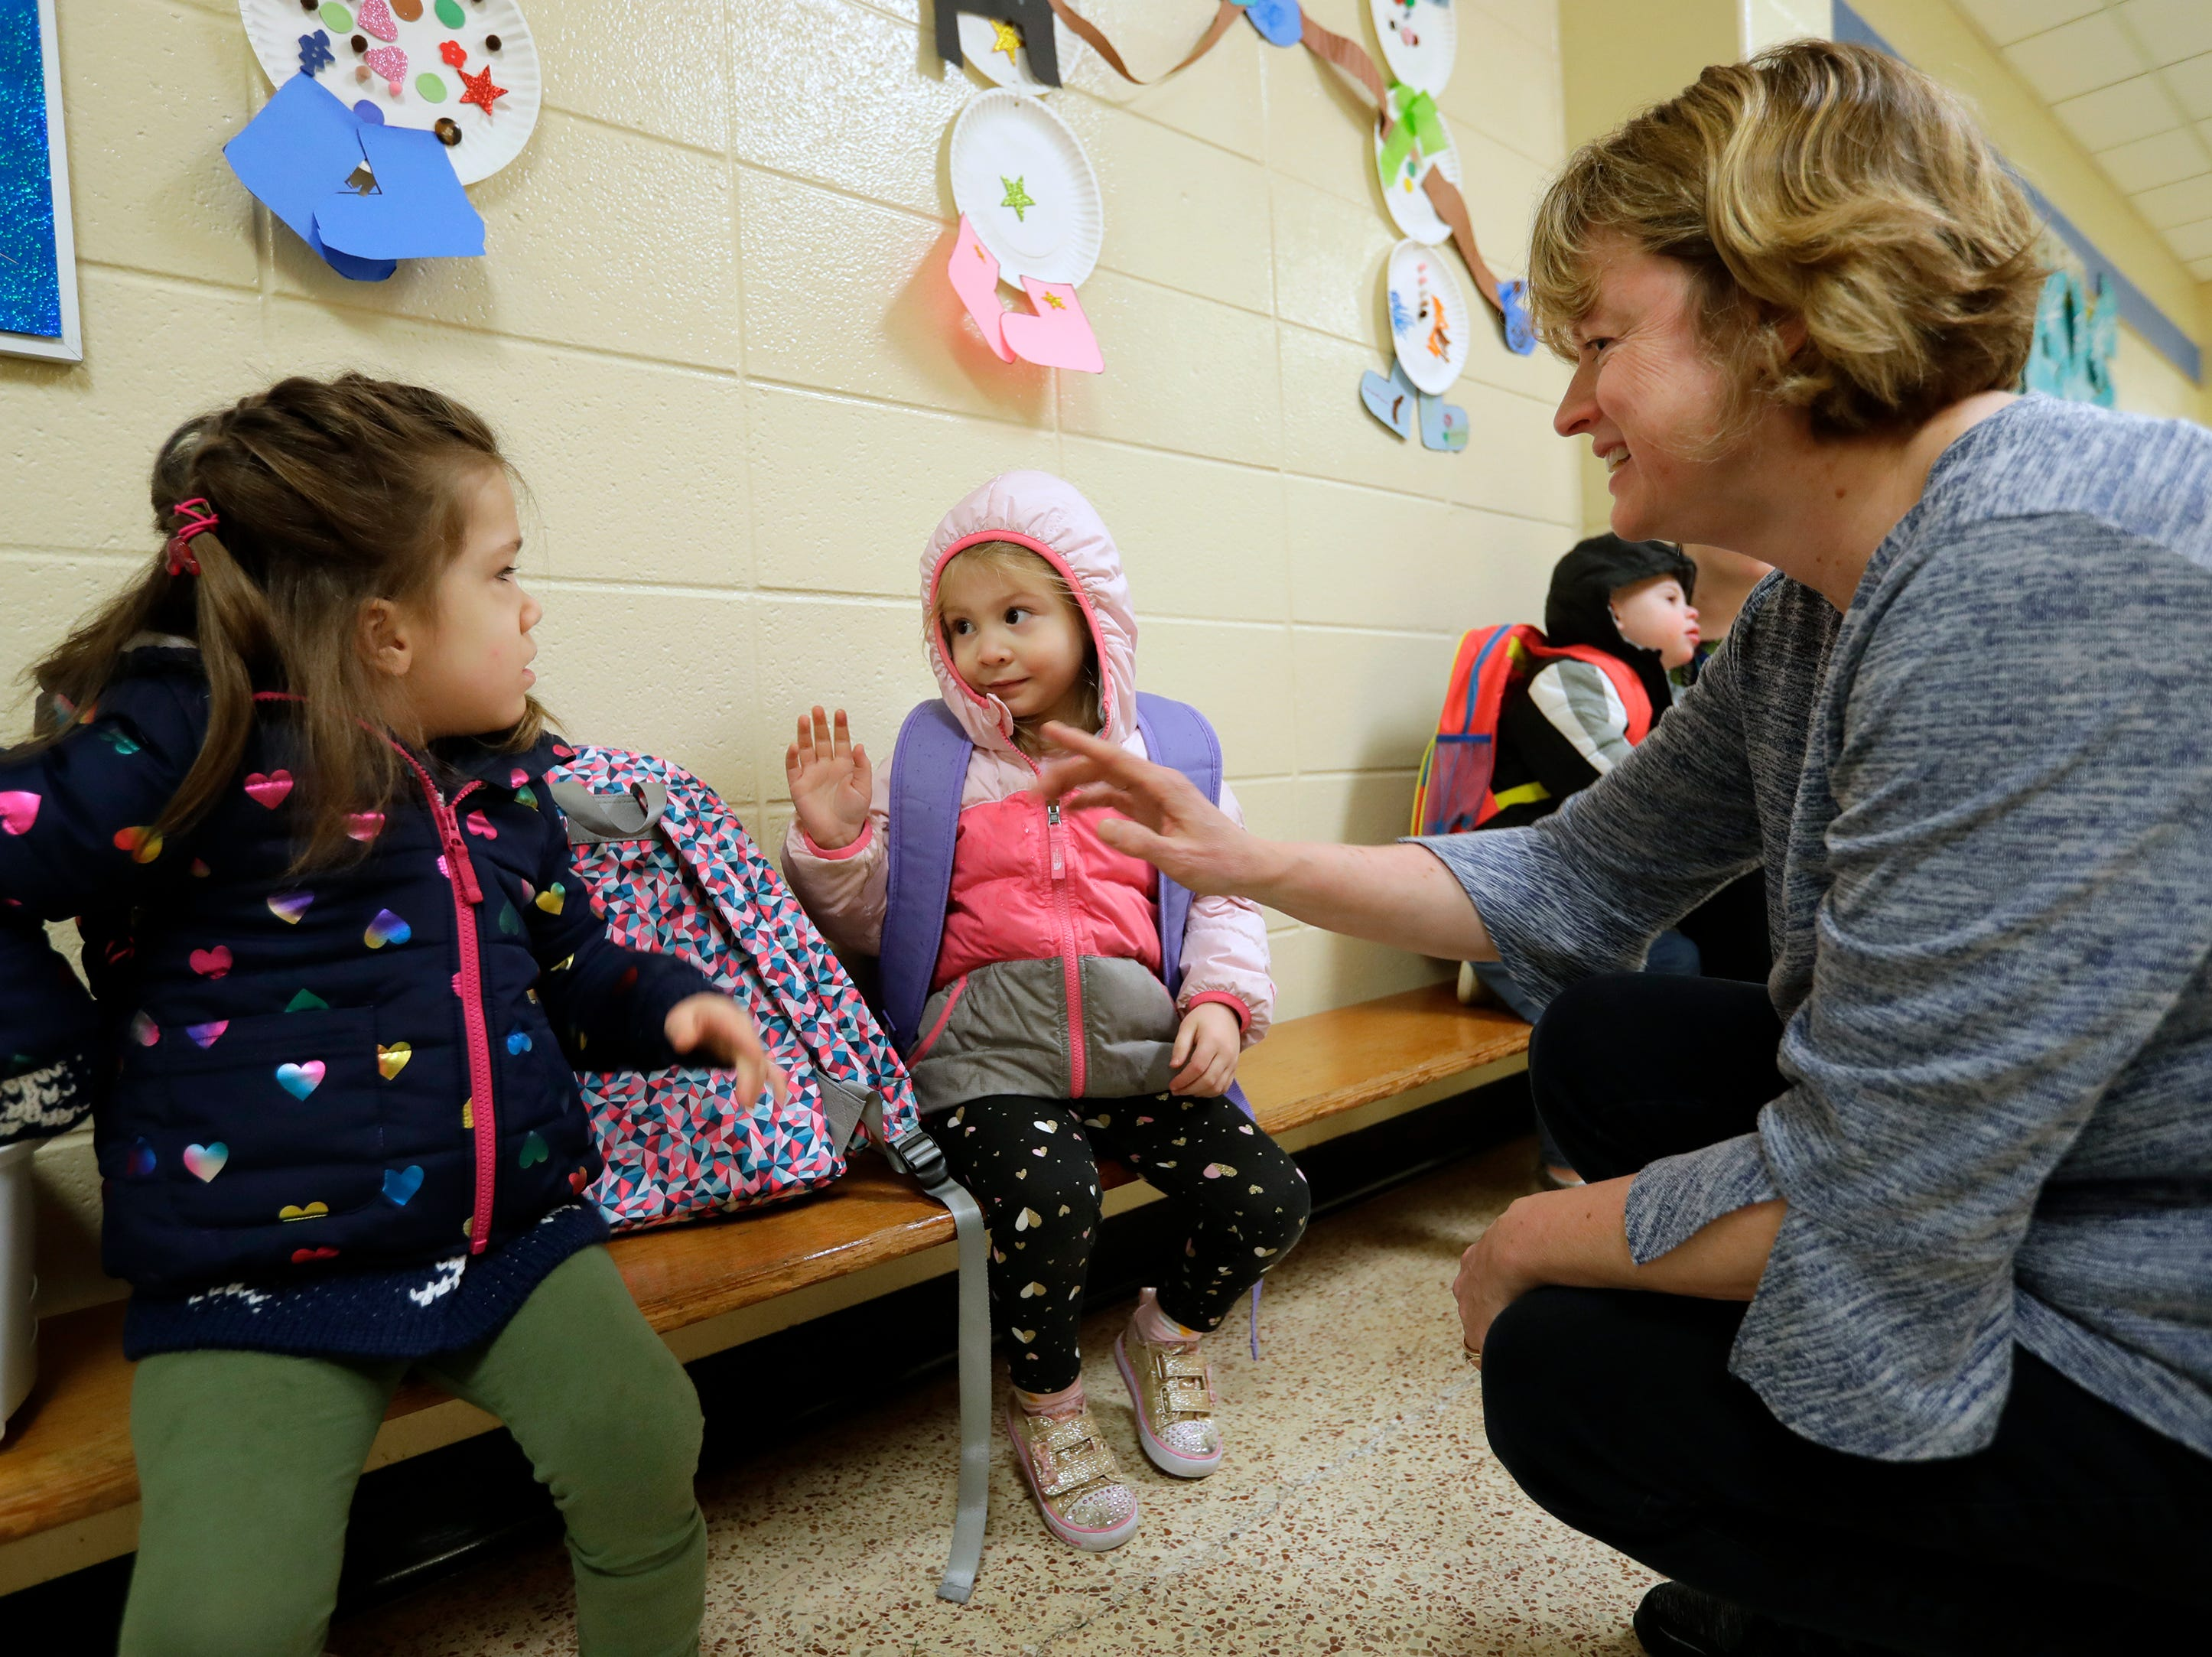 Avi Brennan, left, is a little hesitant as she is introduced to Lydia Denton, 3, on her first day of school by her teacher Renee Poeschl Monday, January 7, 2019, at the Washington School of Early Learning in Neenah, Wis. Dan Powers/USA TODAY NETWORK-Wisconsin